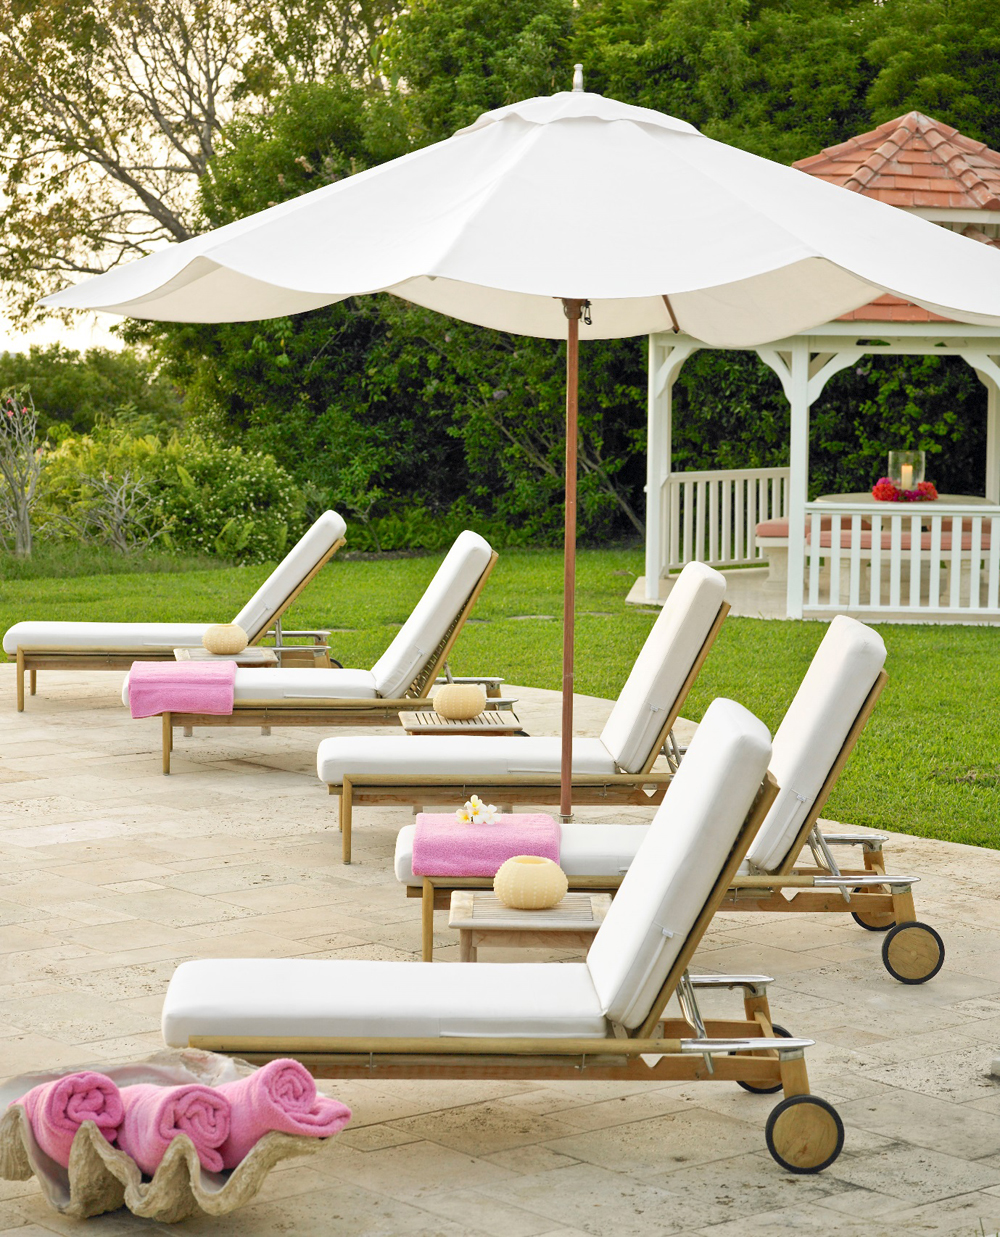 Jenny Blanc Blog - Jenny Blanc Clam Shell with Teak Sun Loungers